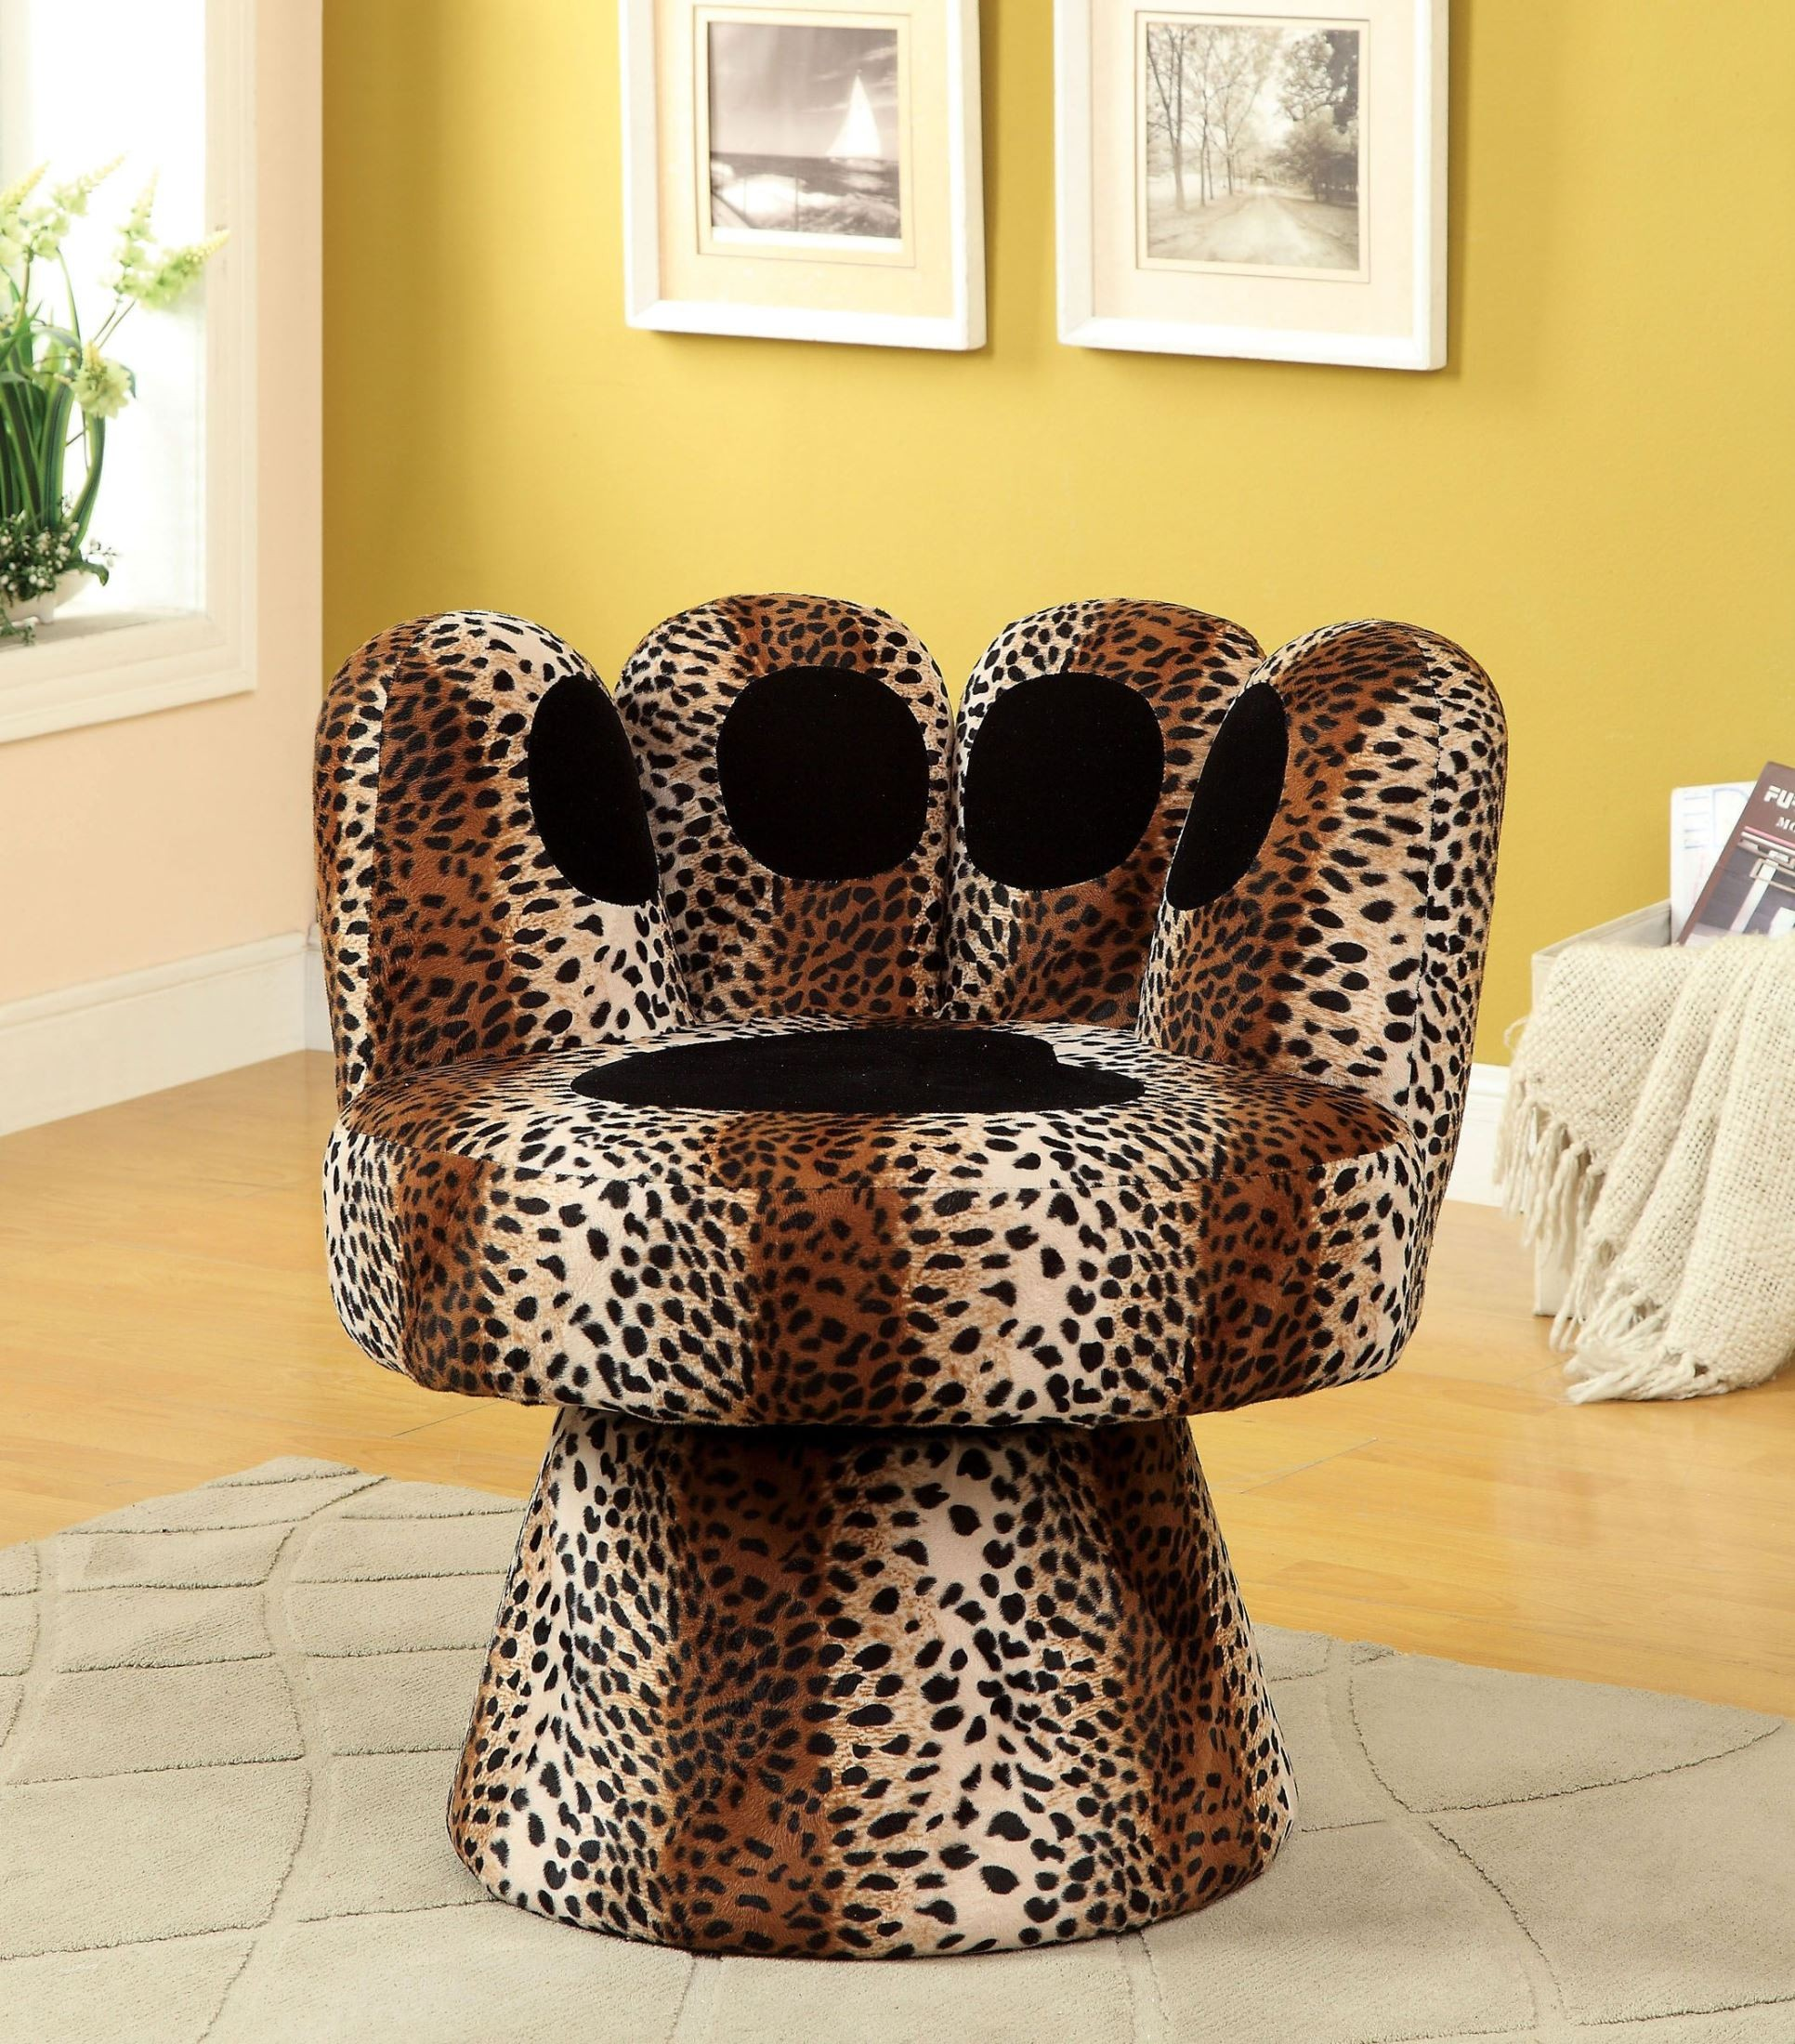 Paus Leopard Print Swivel Accent Chair From Furniture Of